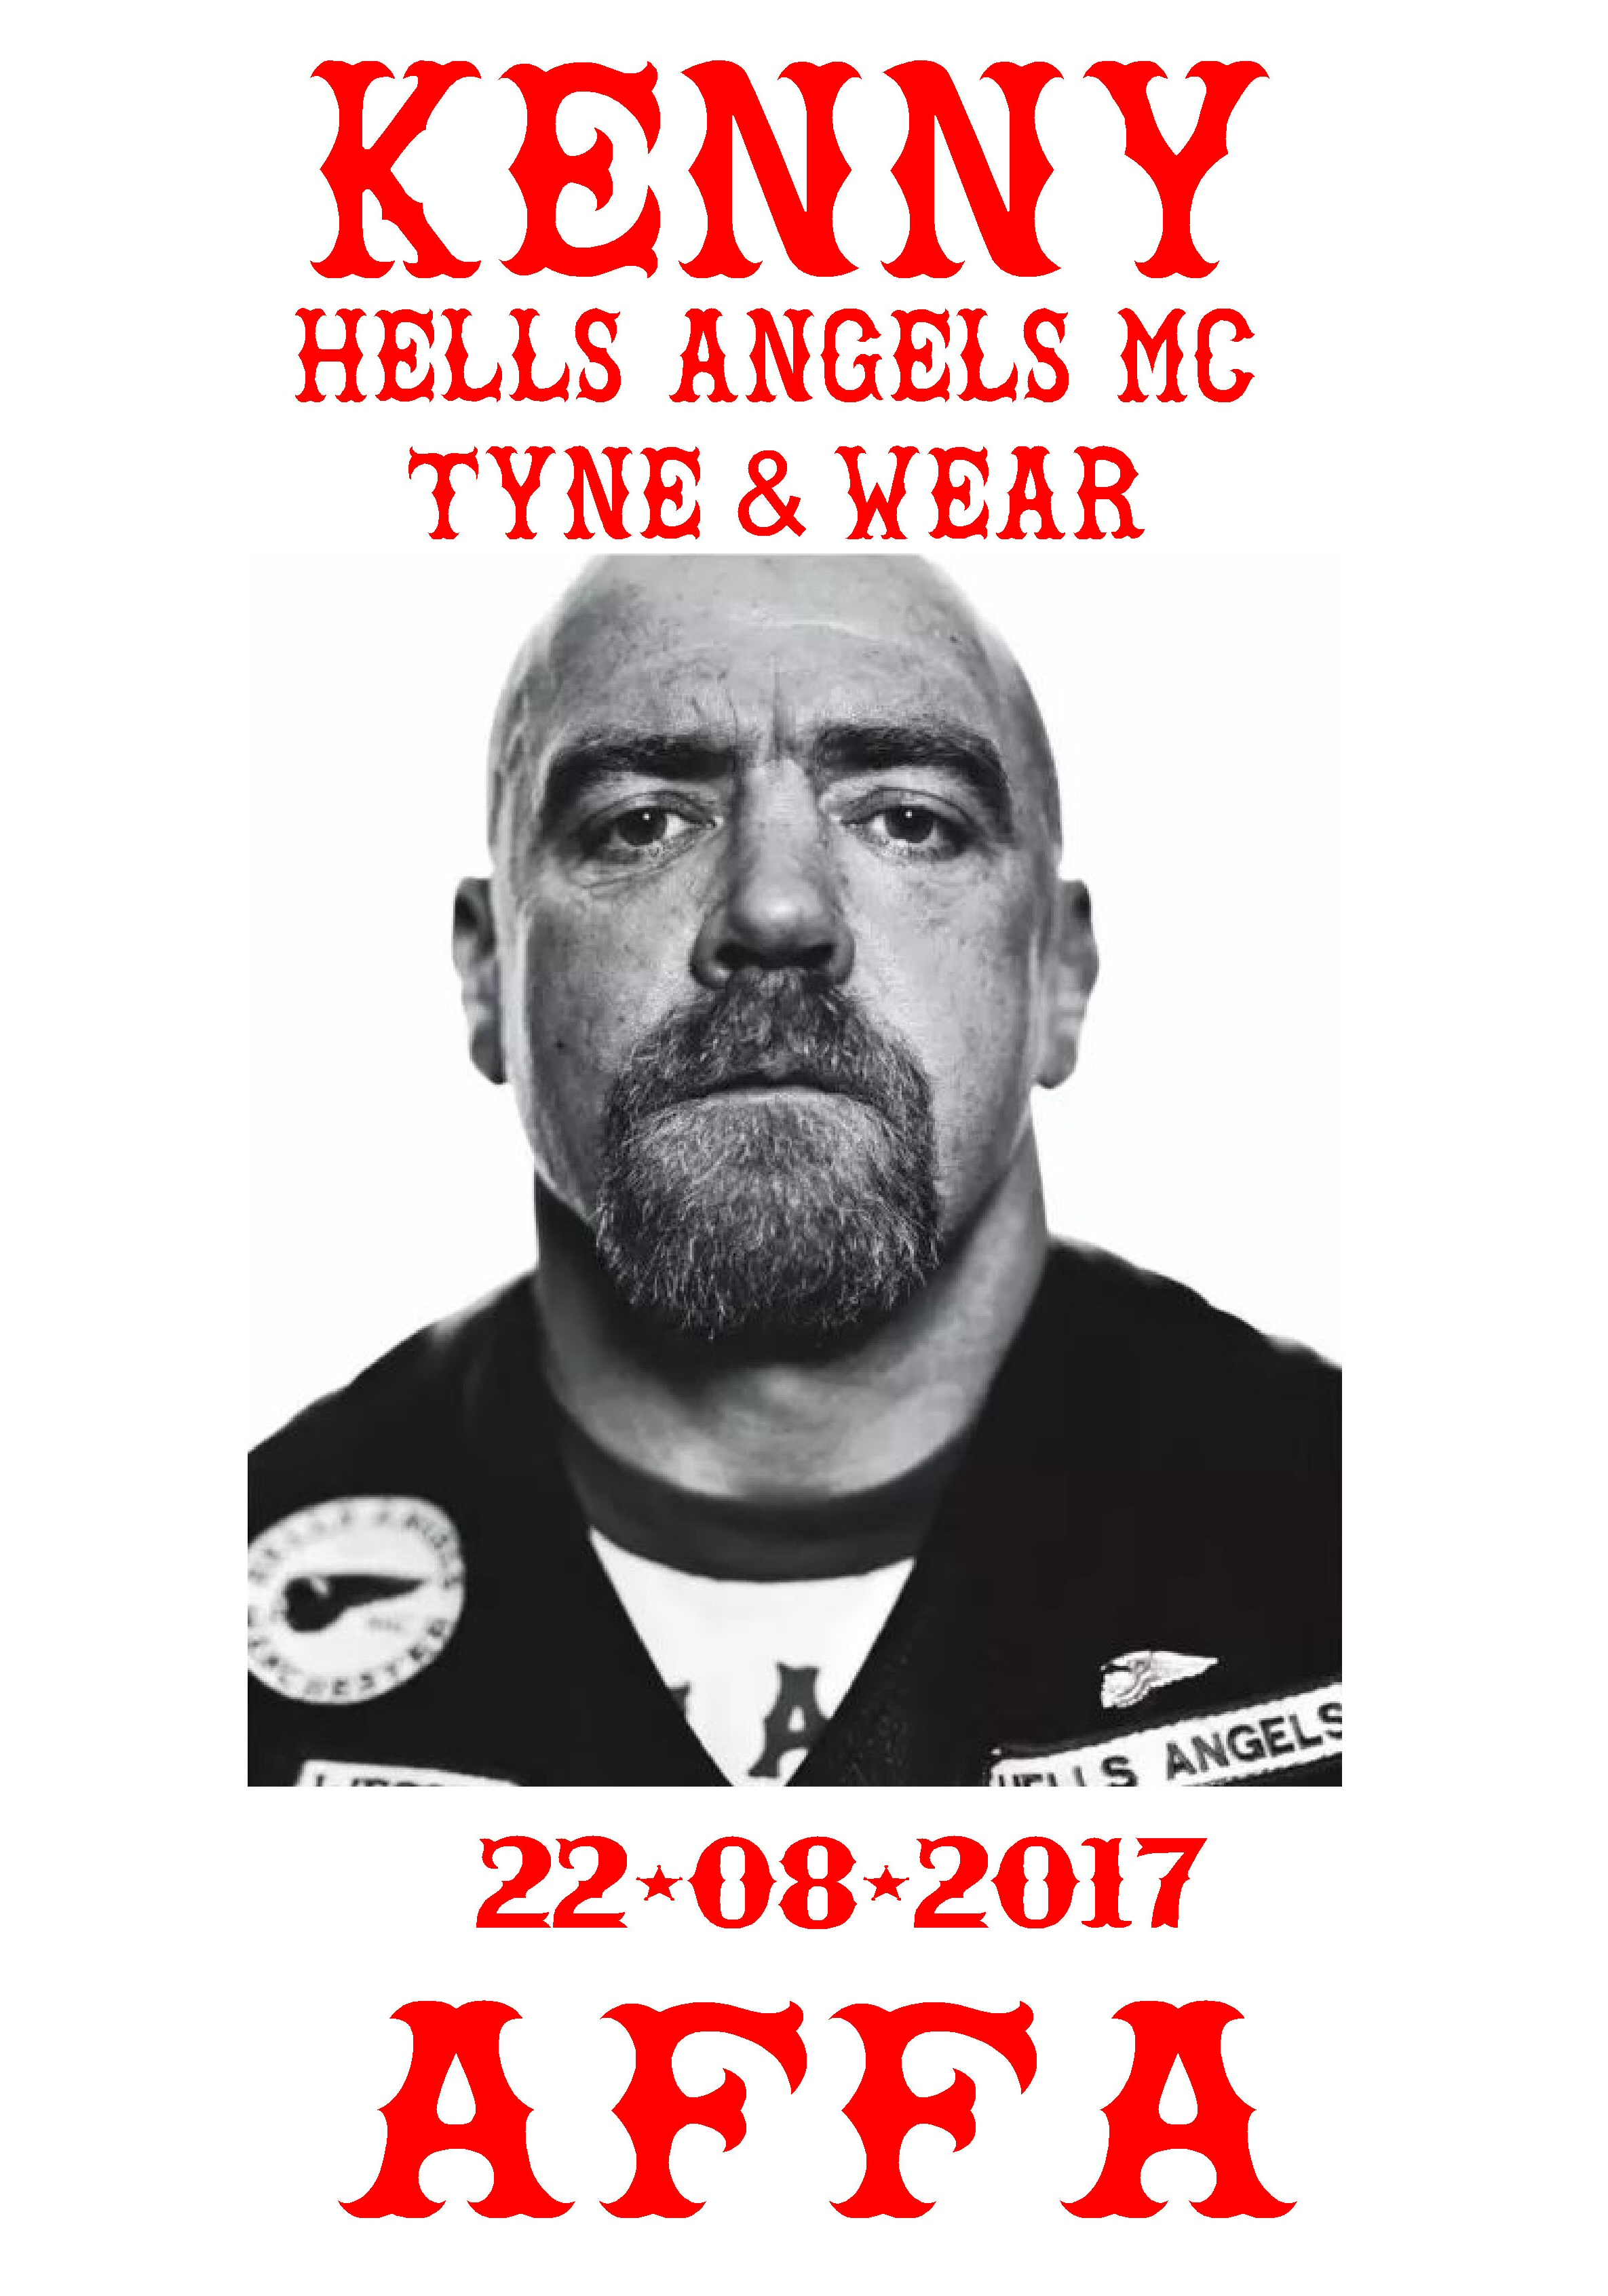 R I P – Hells Angels MC Kent